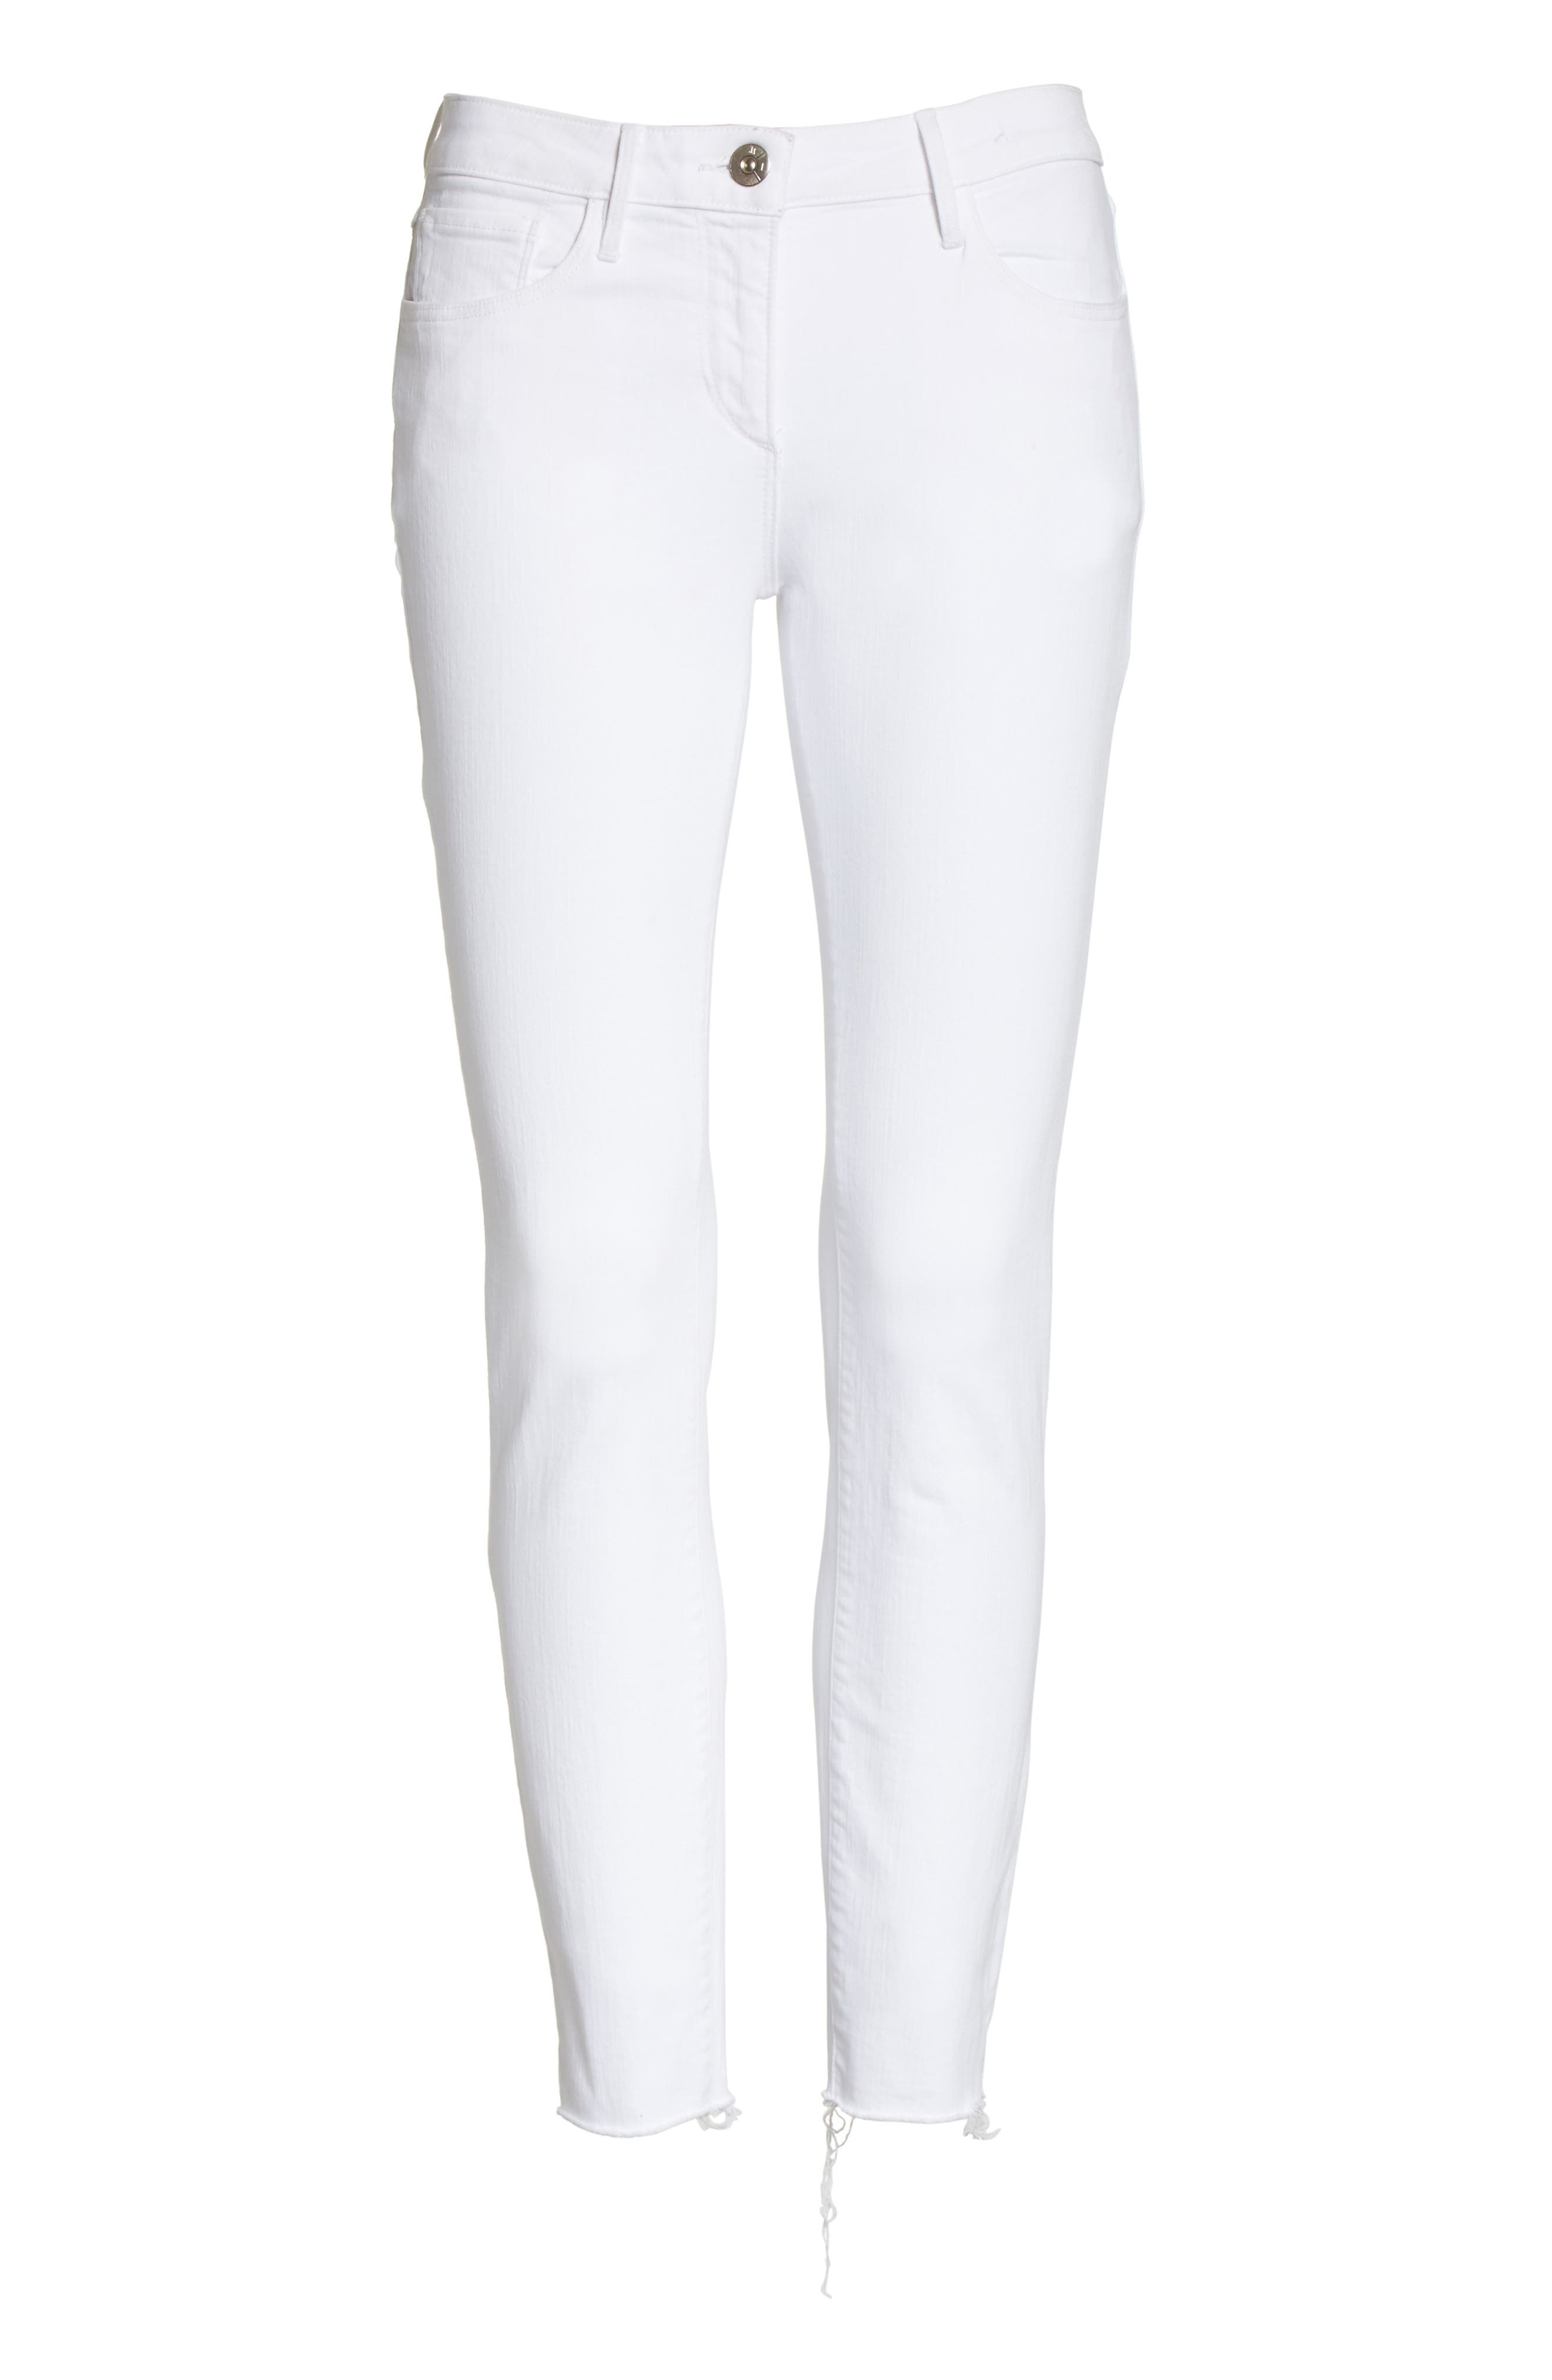 W2 Crop Skinny Jeans,                             Alternate thumbnail 6, color,                             100